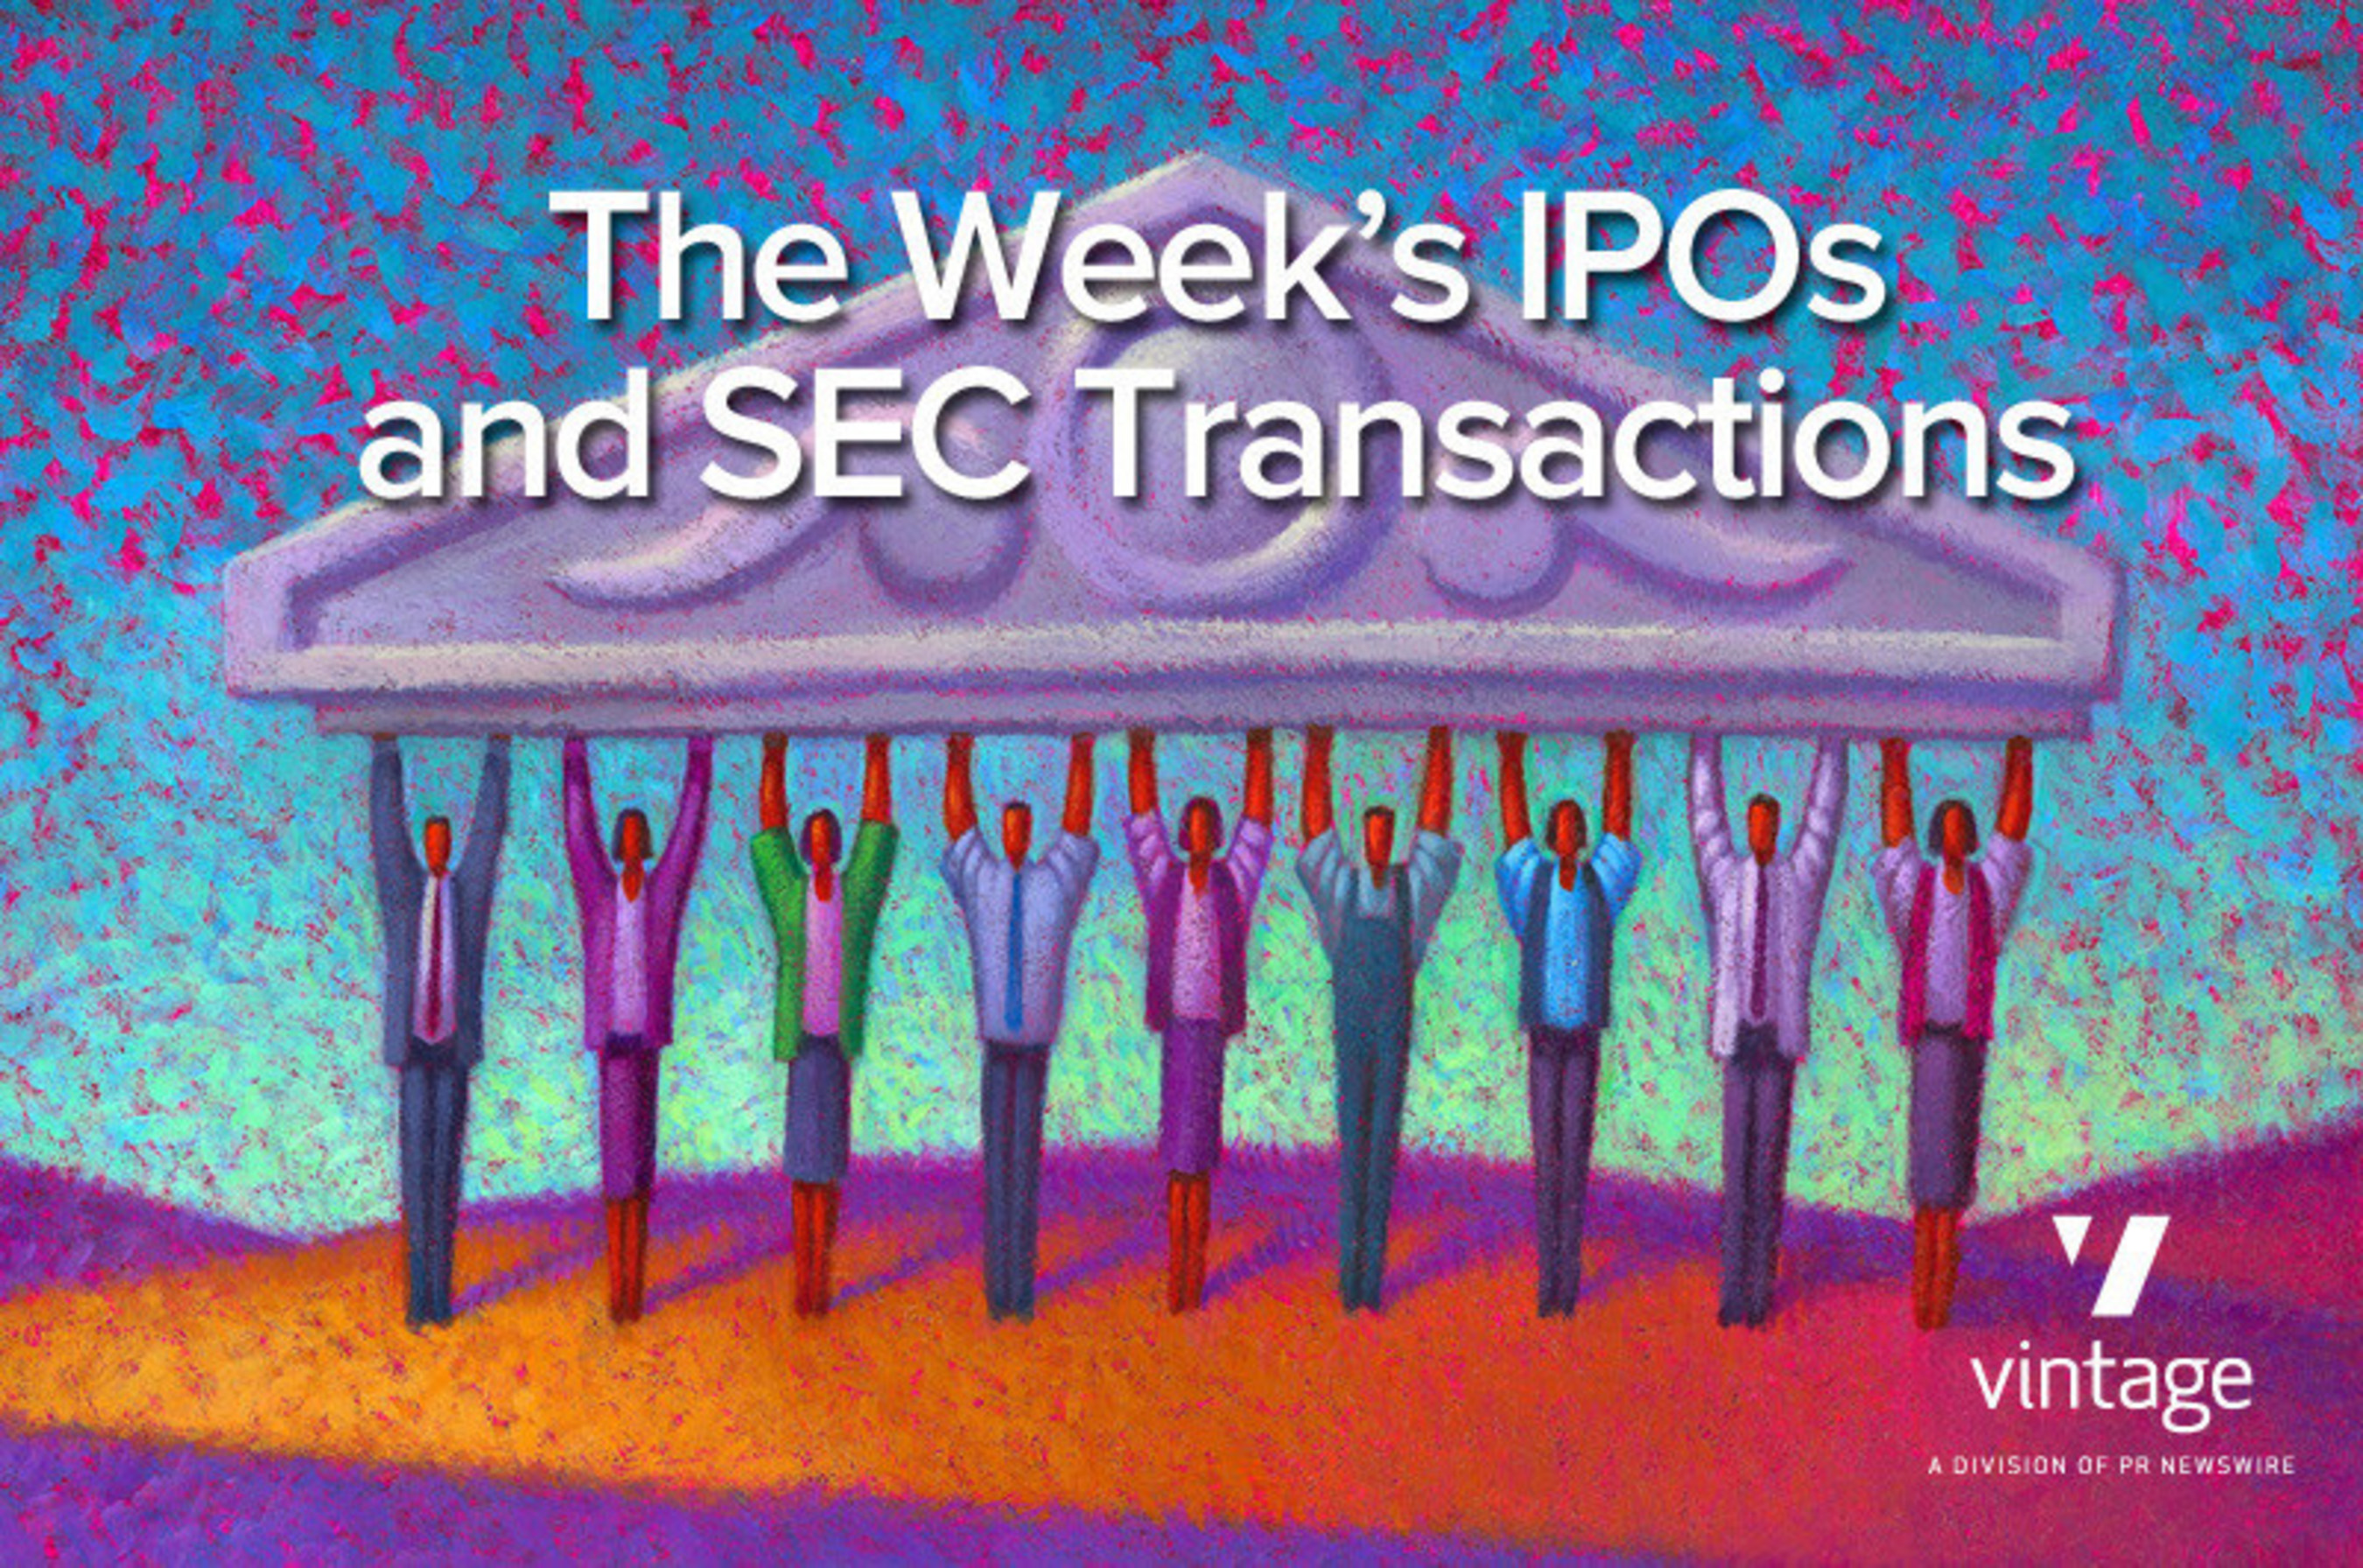 Stay updated on the week's IPOs and Transactions on the Building Shareholder Confidence blog, ...